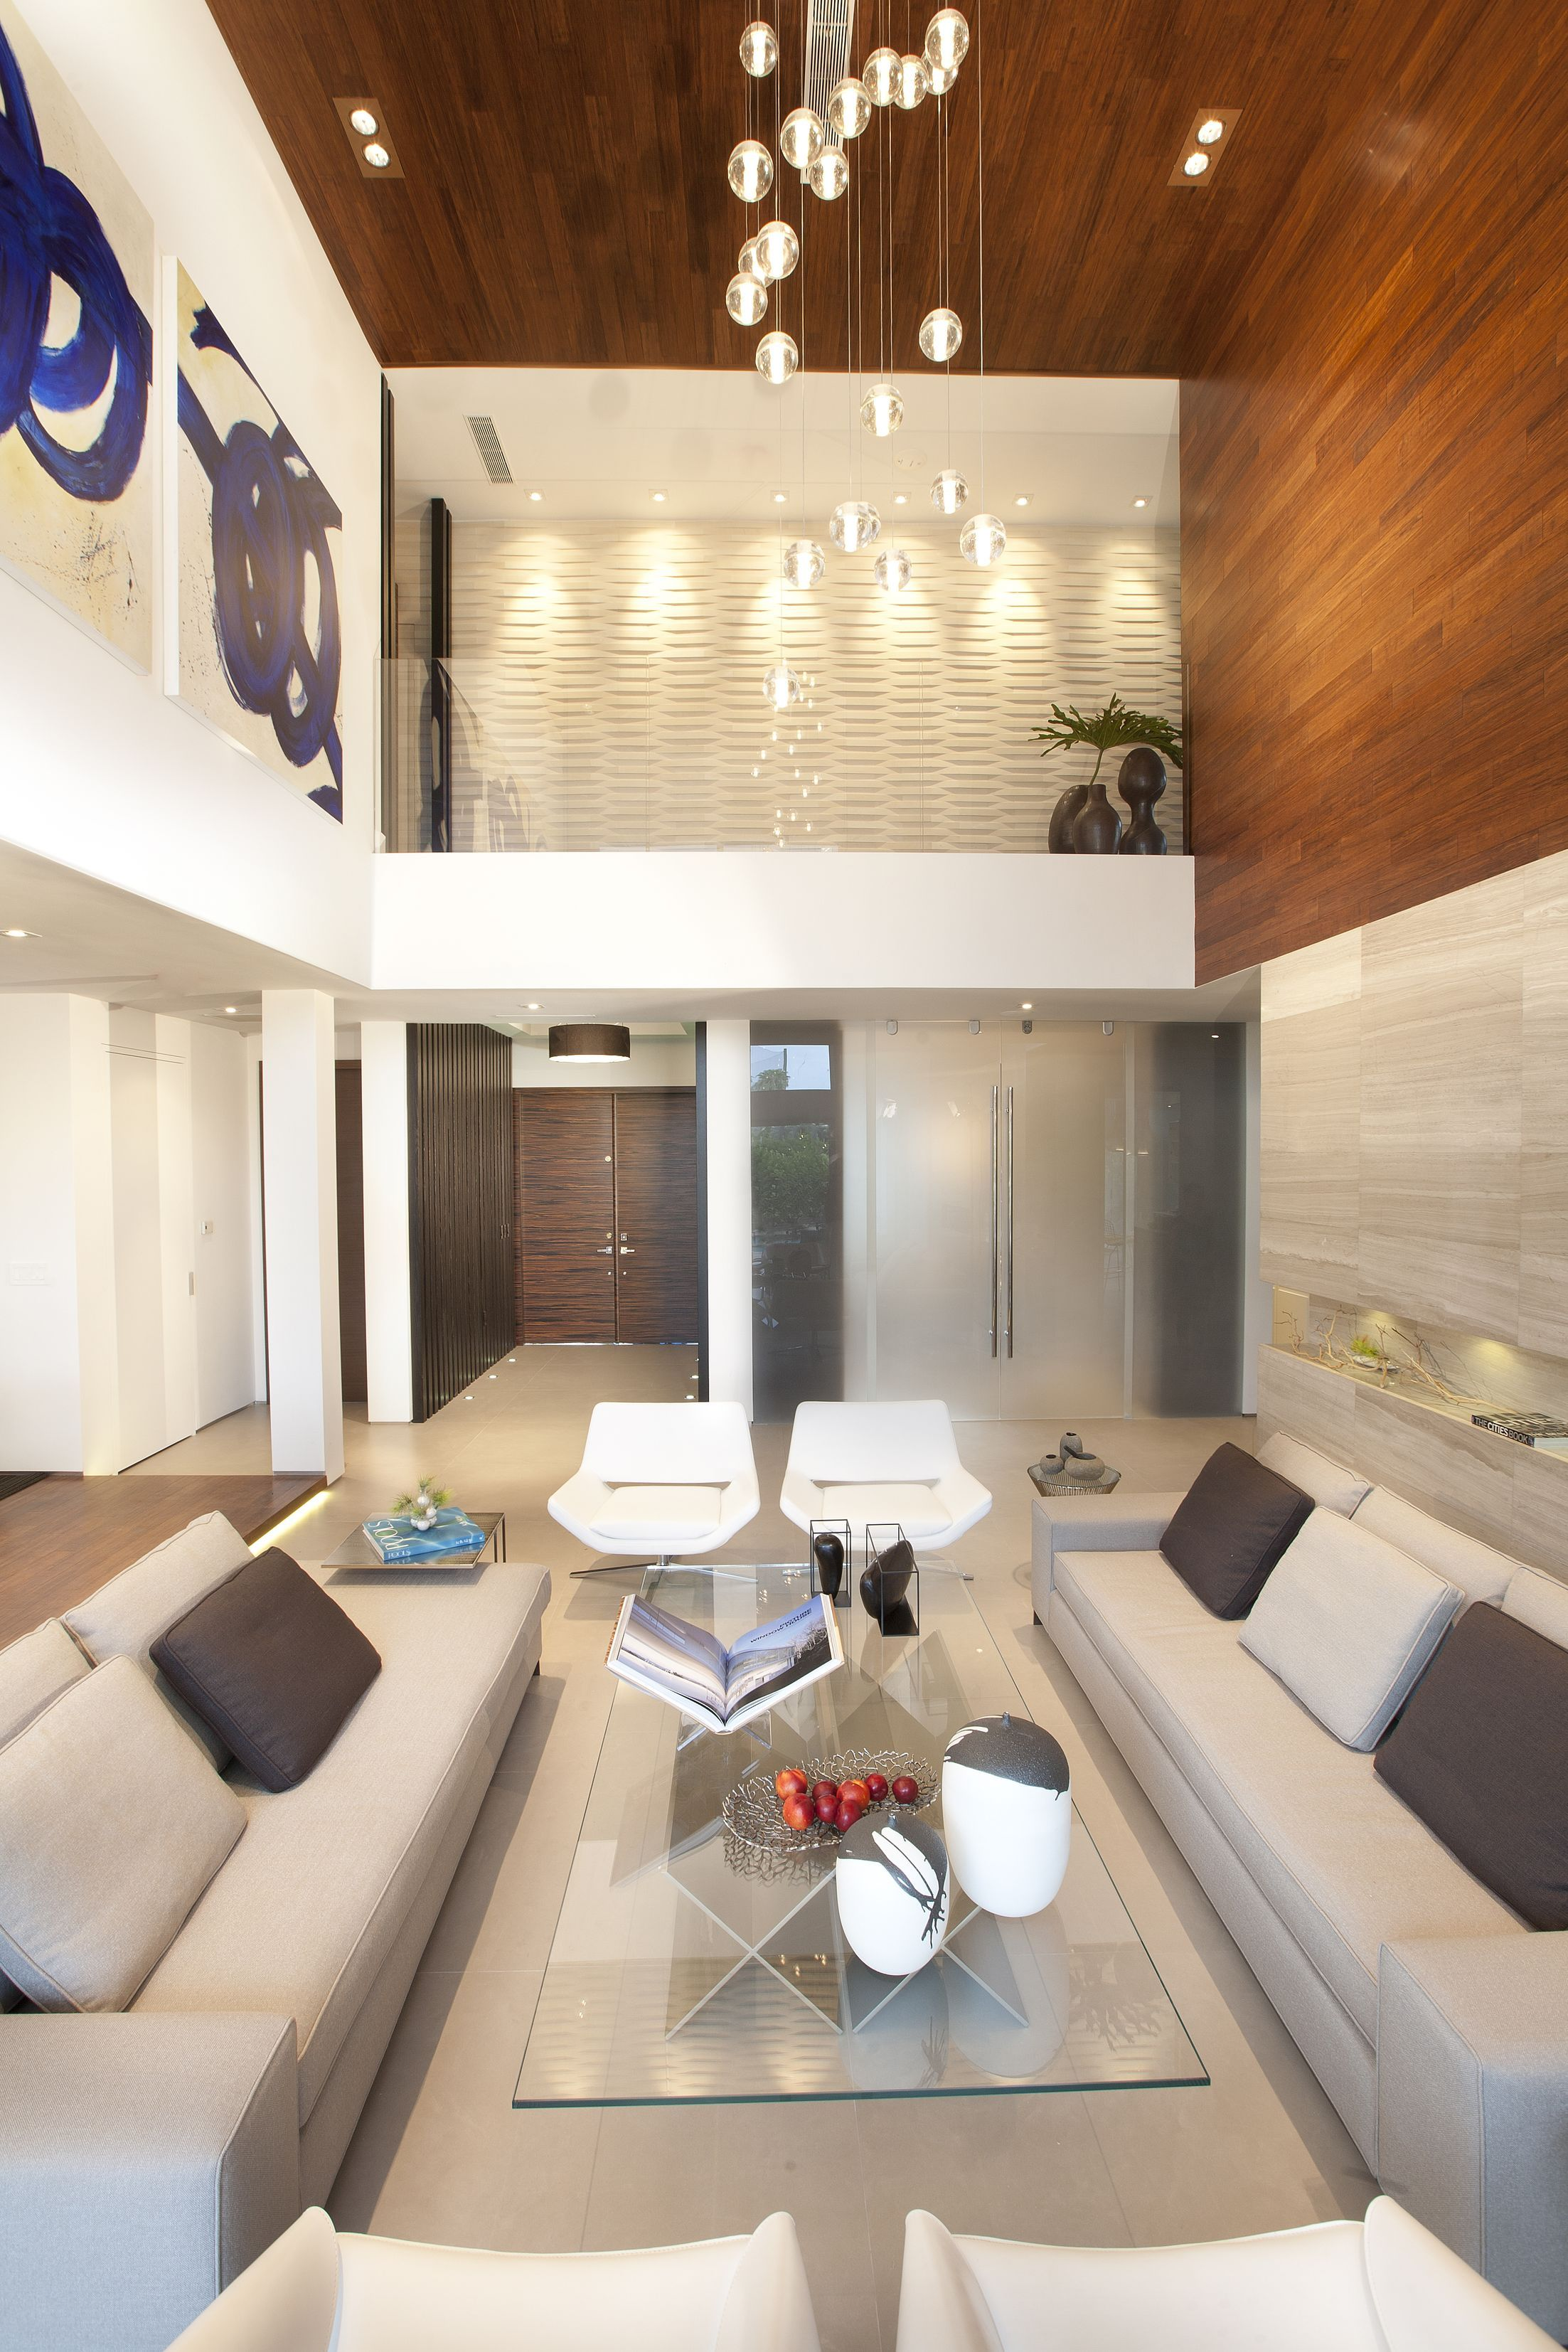 Residential interior design project in Miami, FL - Modern - Living room -  Images by DKOR Interiors | Wayfair